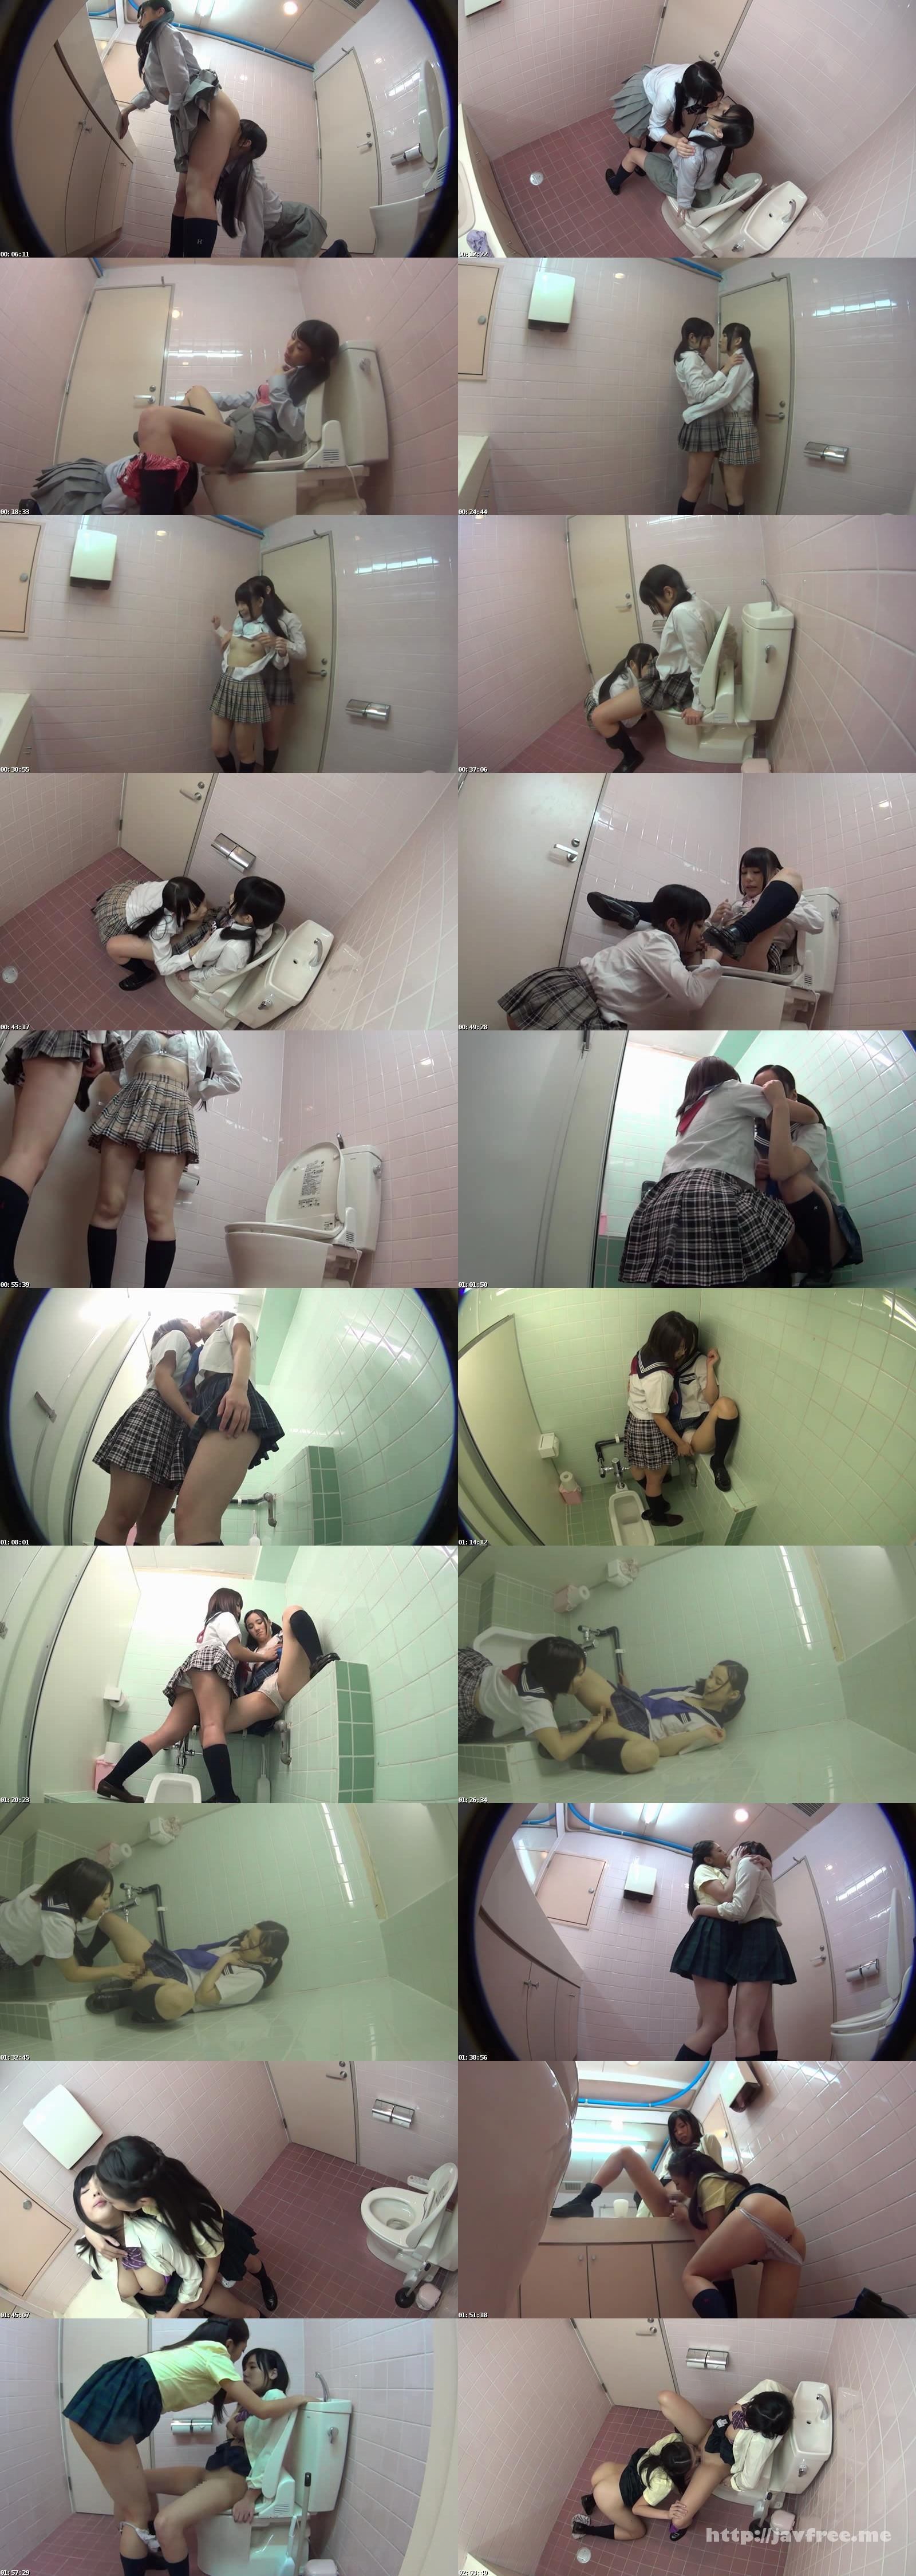 [TDAS-009] JK密室トイレレズビアン - image TDAS-009 on https://javfree.me